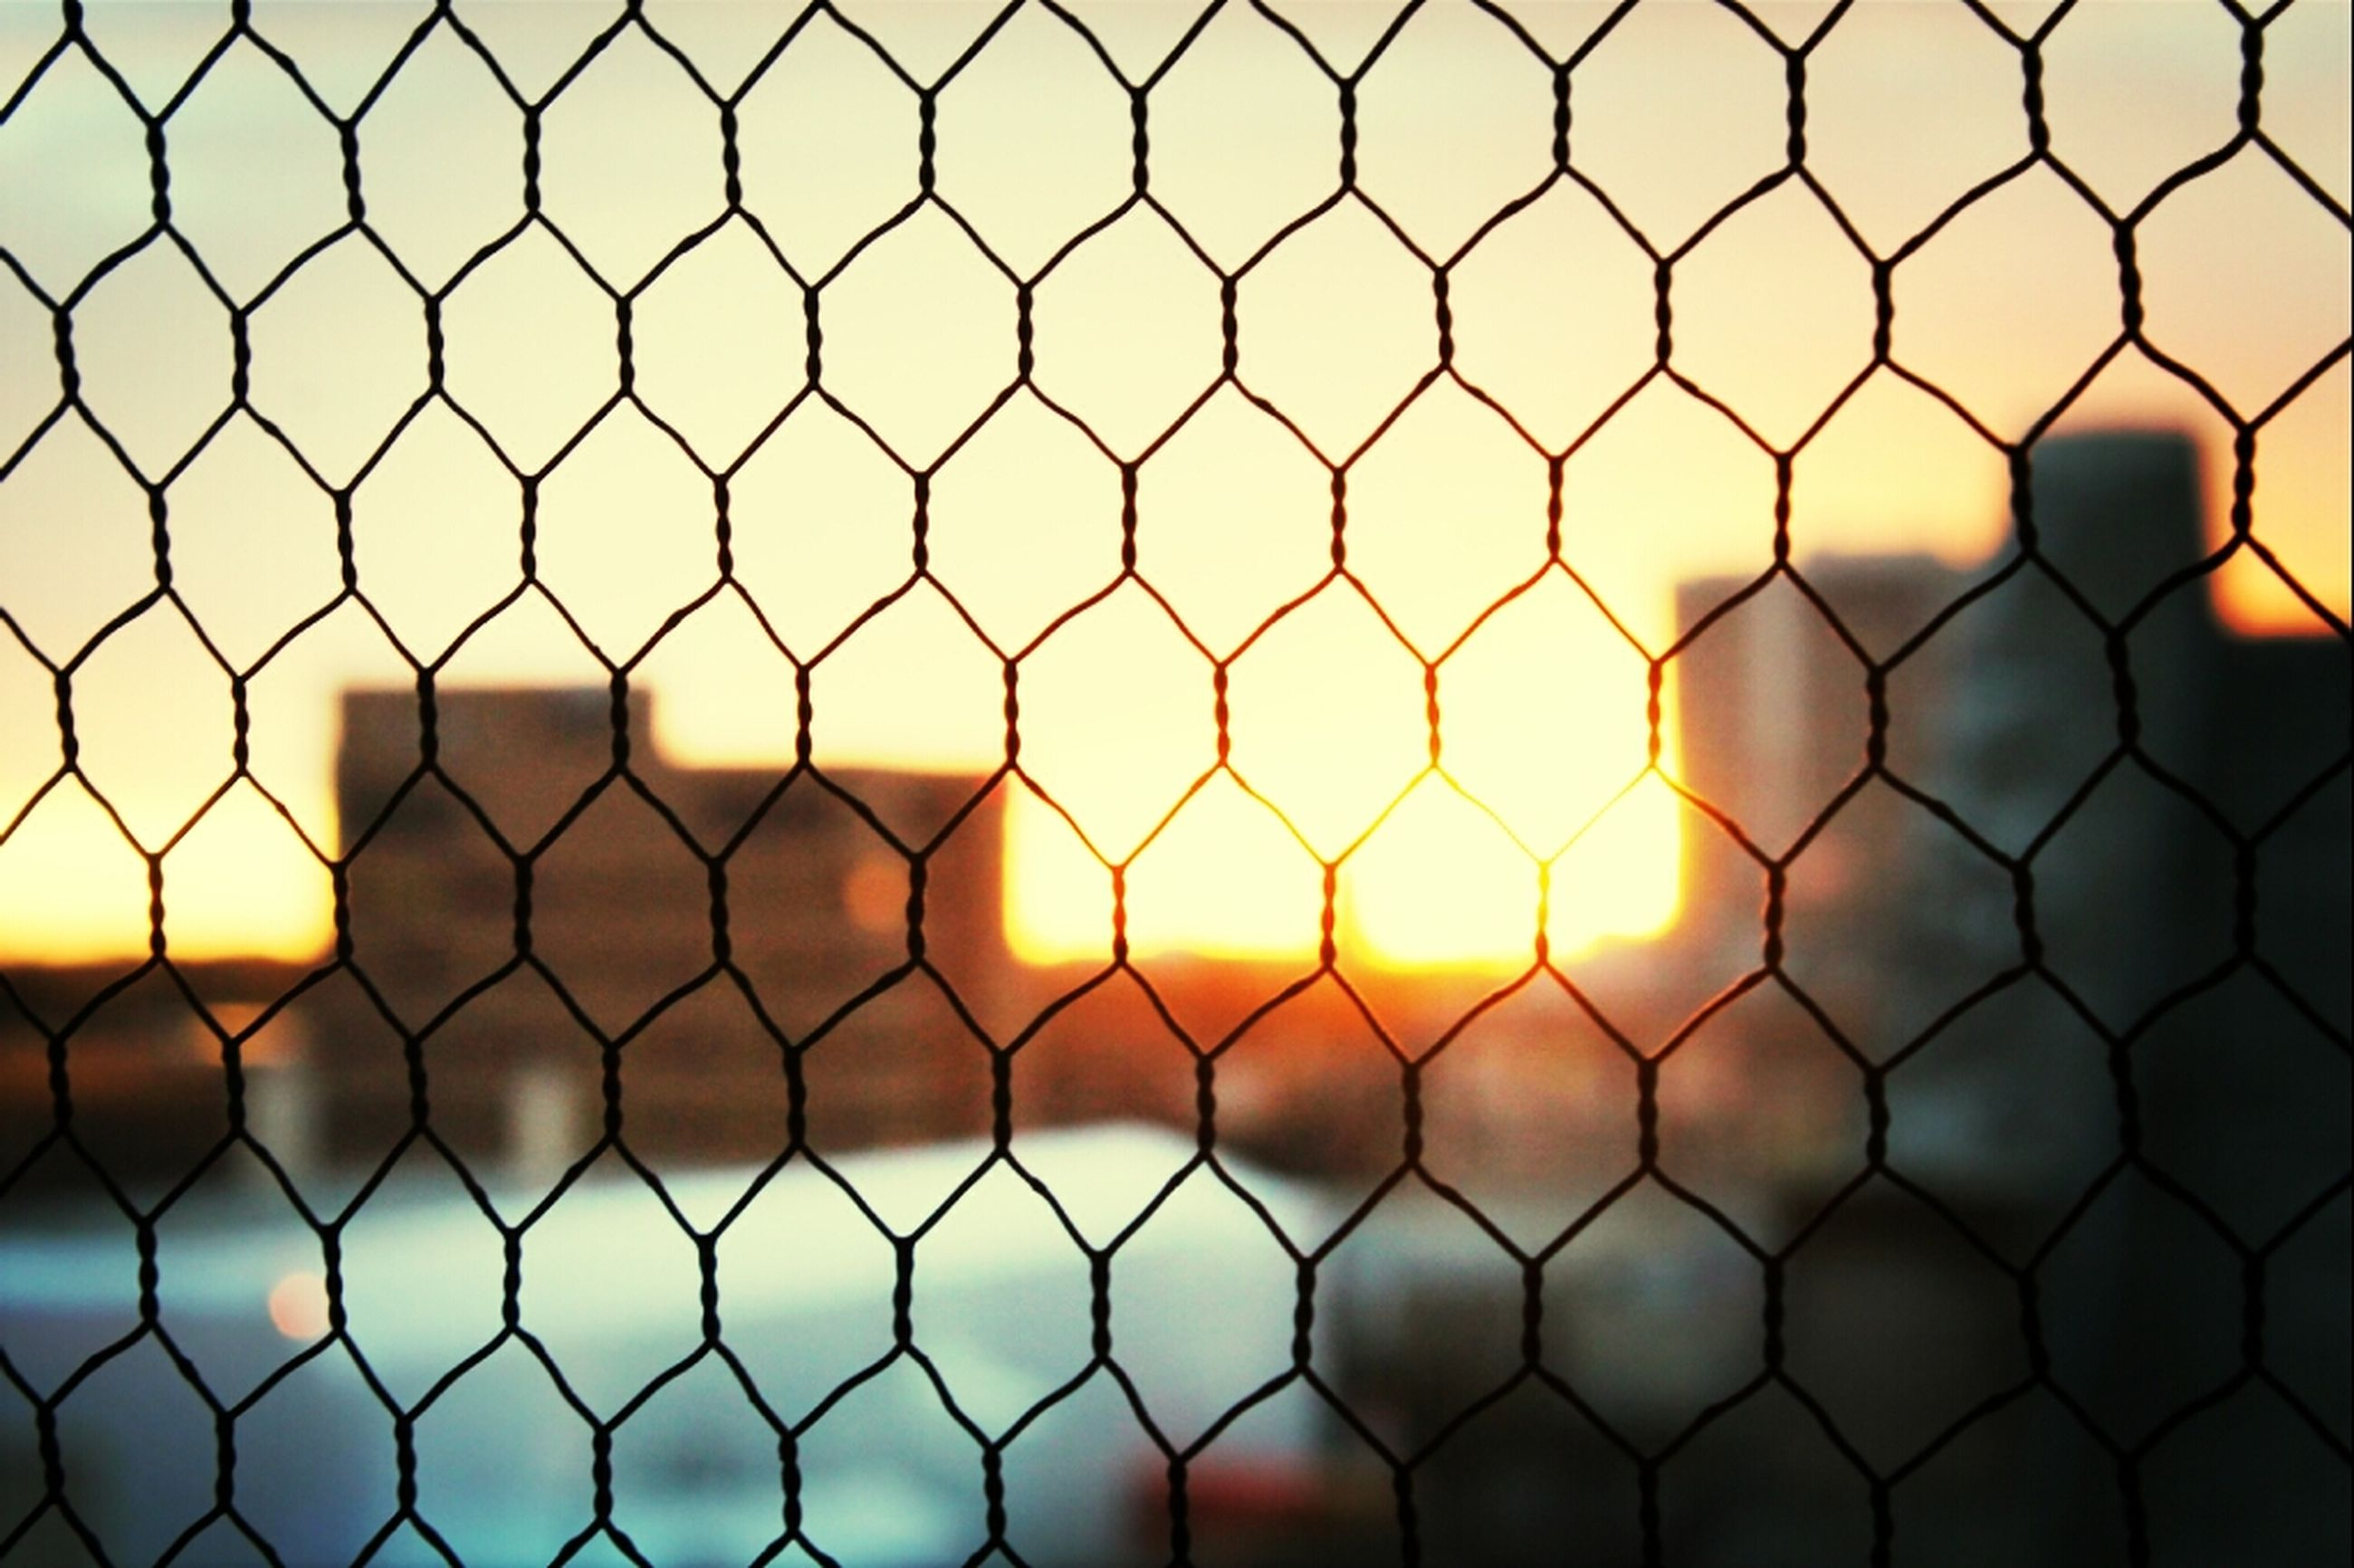 chainlink fence, fence, protection, safety, full frame, security, metal, backgrounds, focus on foreground, pattern, close-up, outdoors, yellow, no people, day, metallic, metal grate, sky, sunset, design